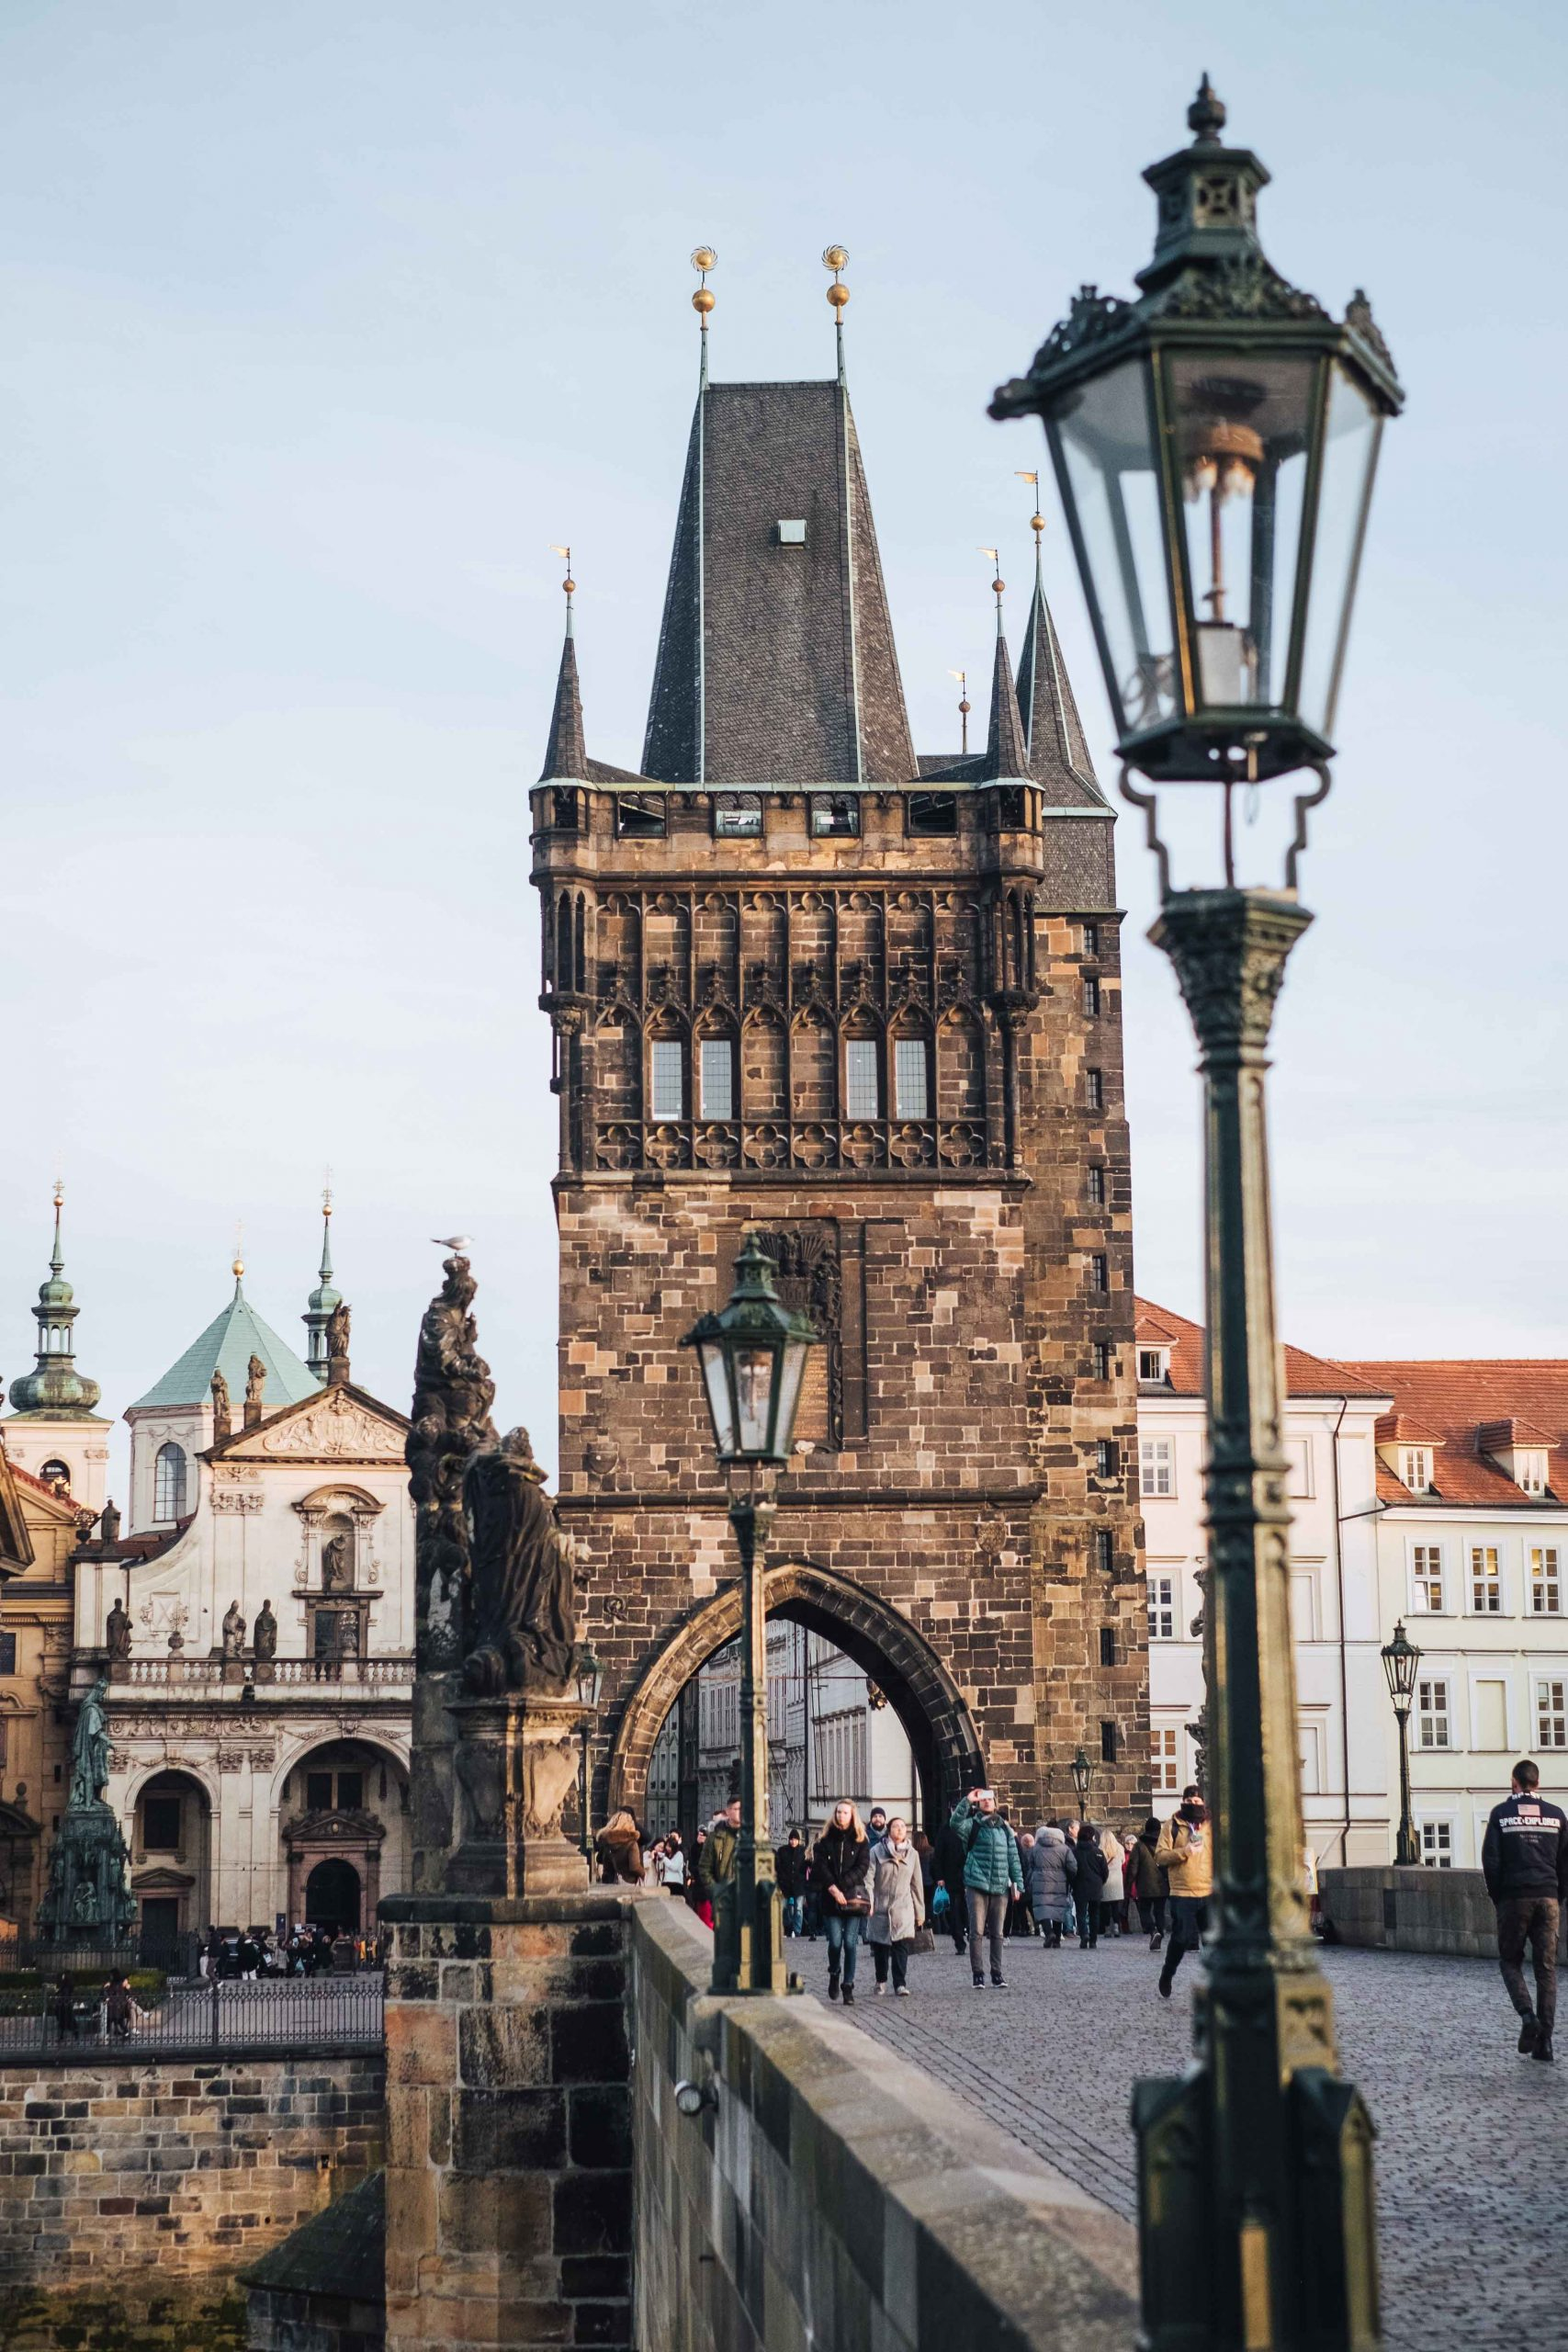 The old Charles Bridge and the old town bridge tower, in Prague, Czech Republic | Mondomulia